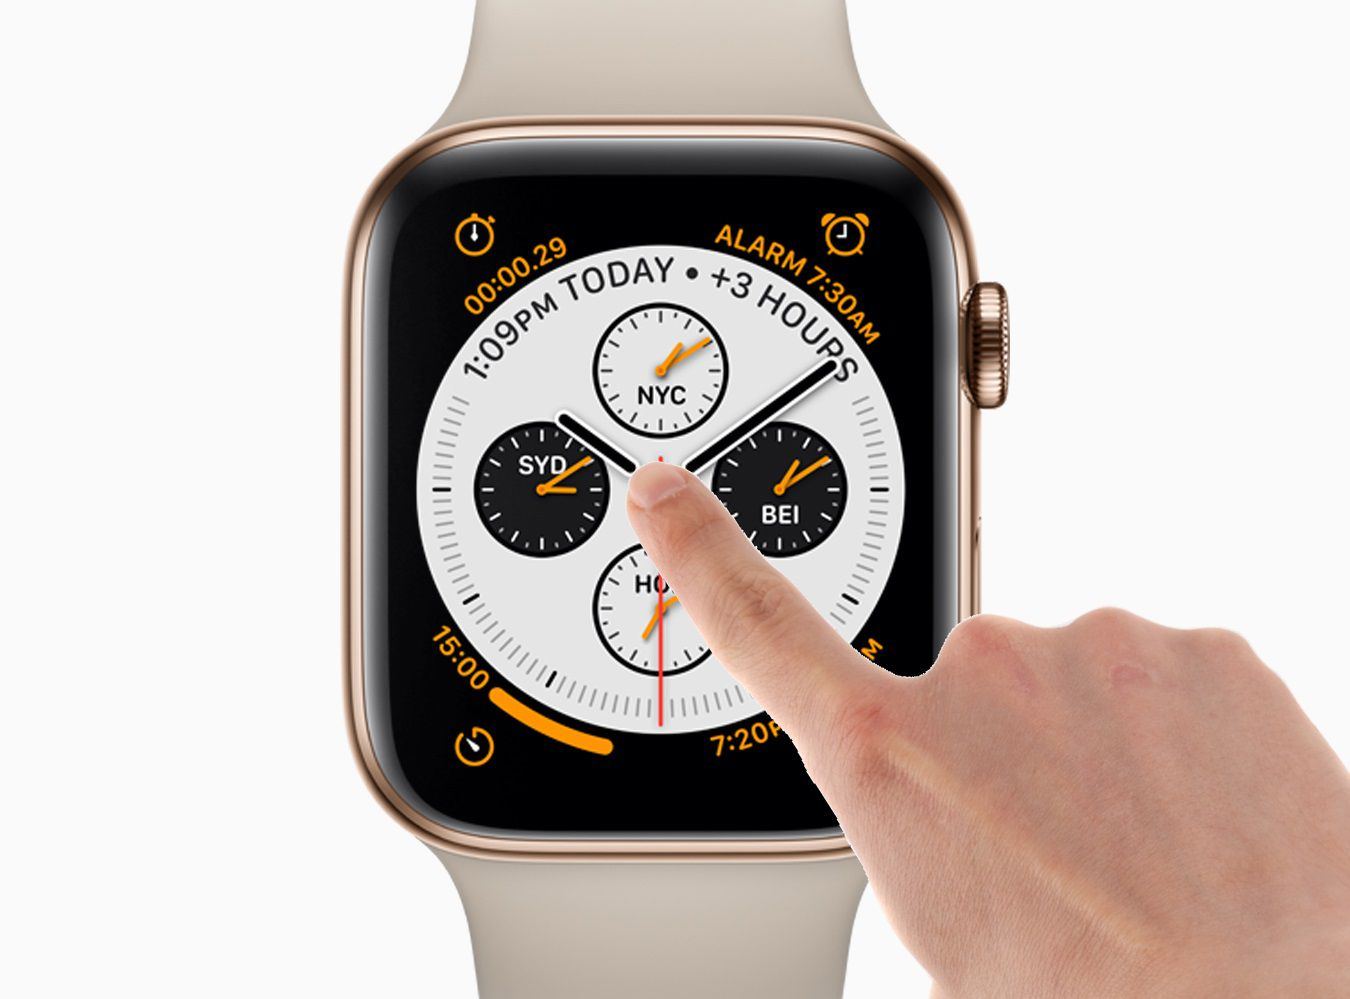 A finger gesturing on an Apple Watch's display